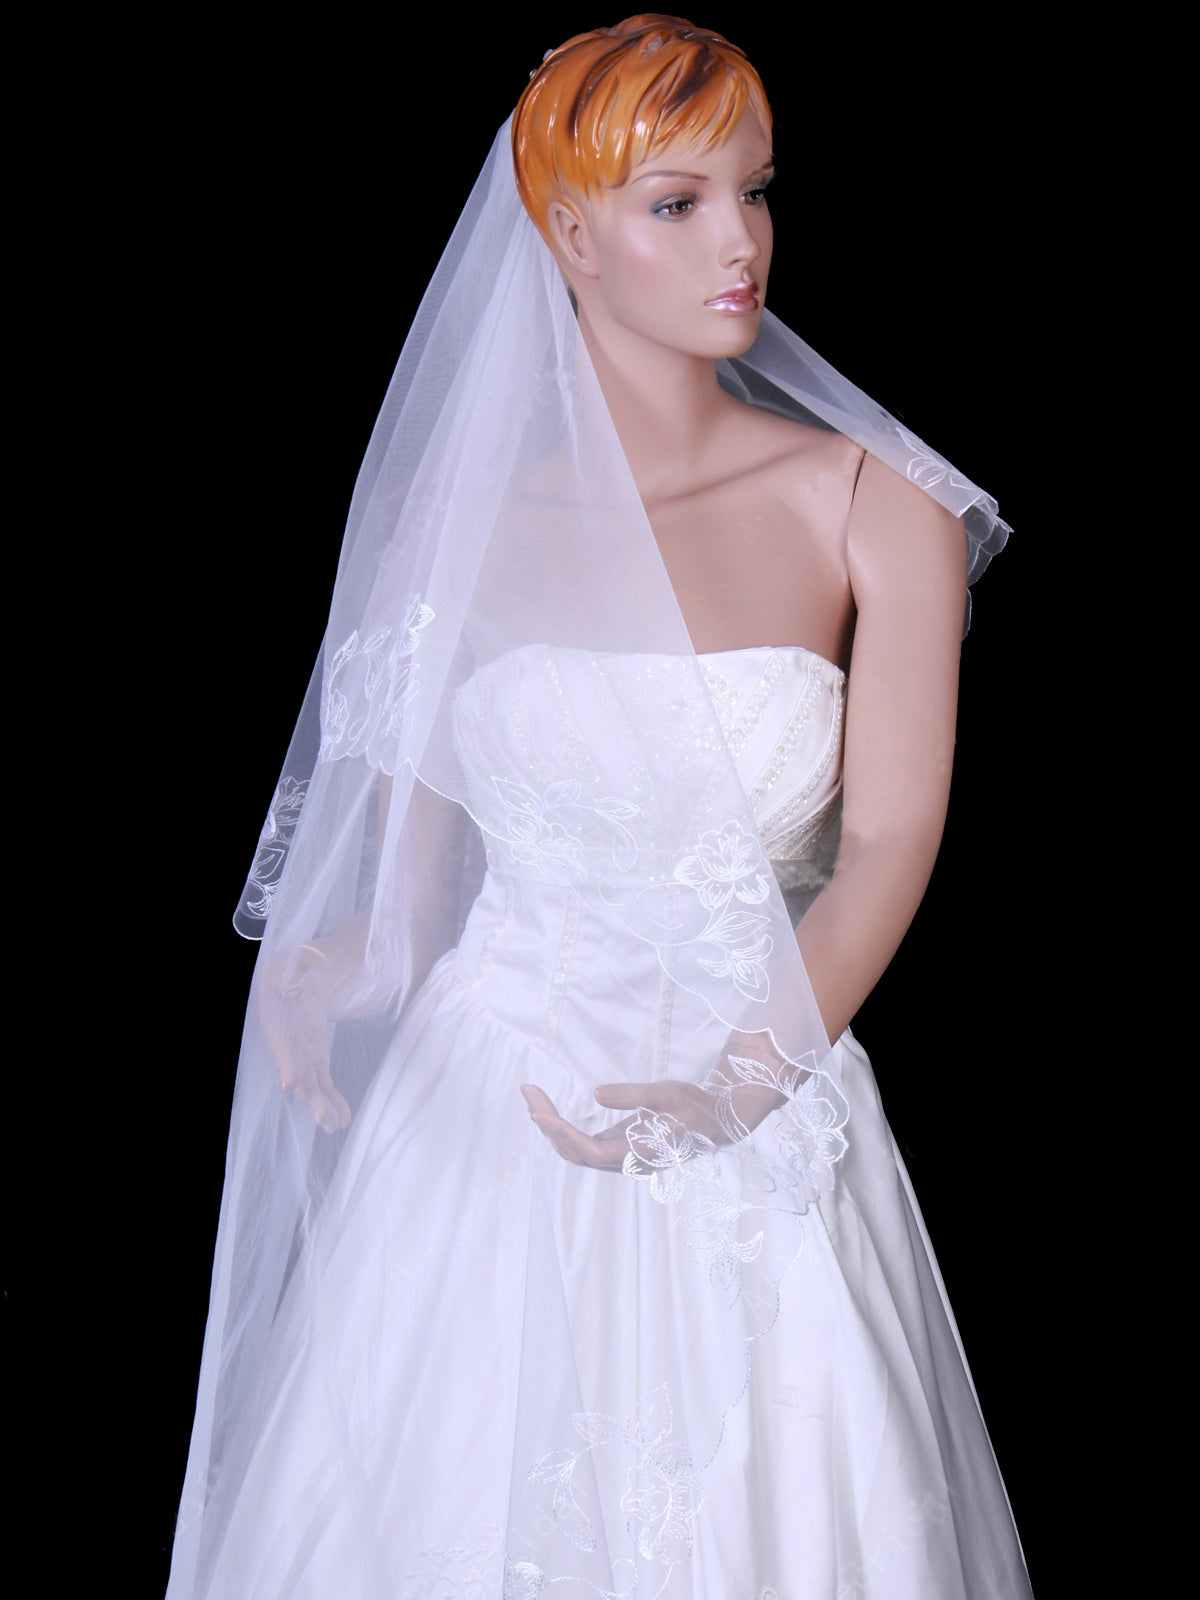 300 cm tulle one tier chapel train bridal veil with embroidery Va011